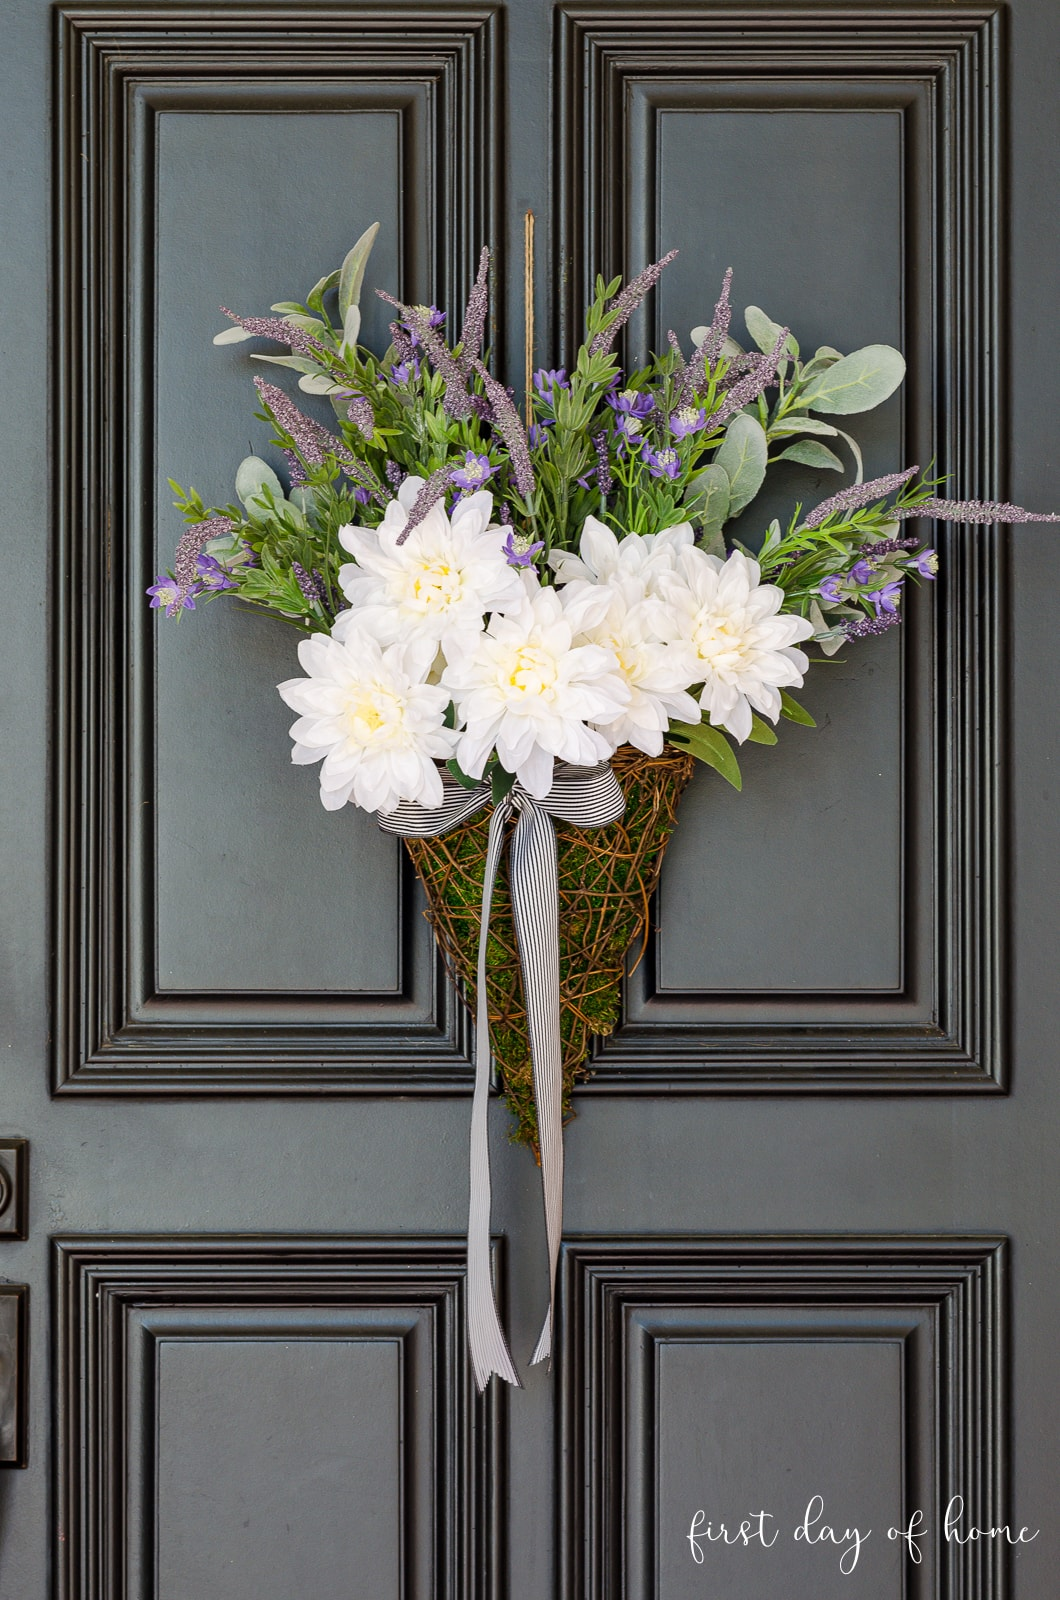 Basket wreath with lavender, dahlias and lamb's ear for spring front door decor